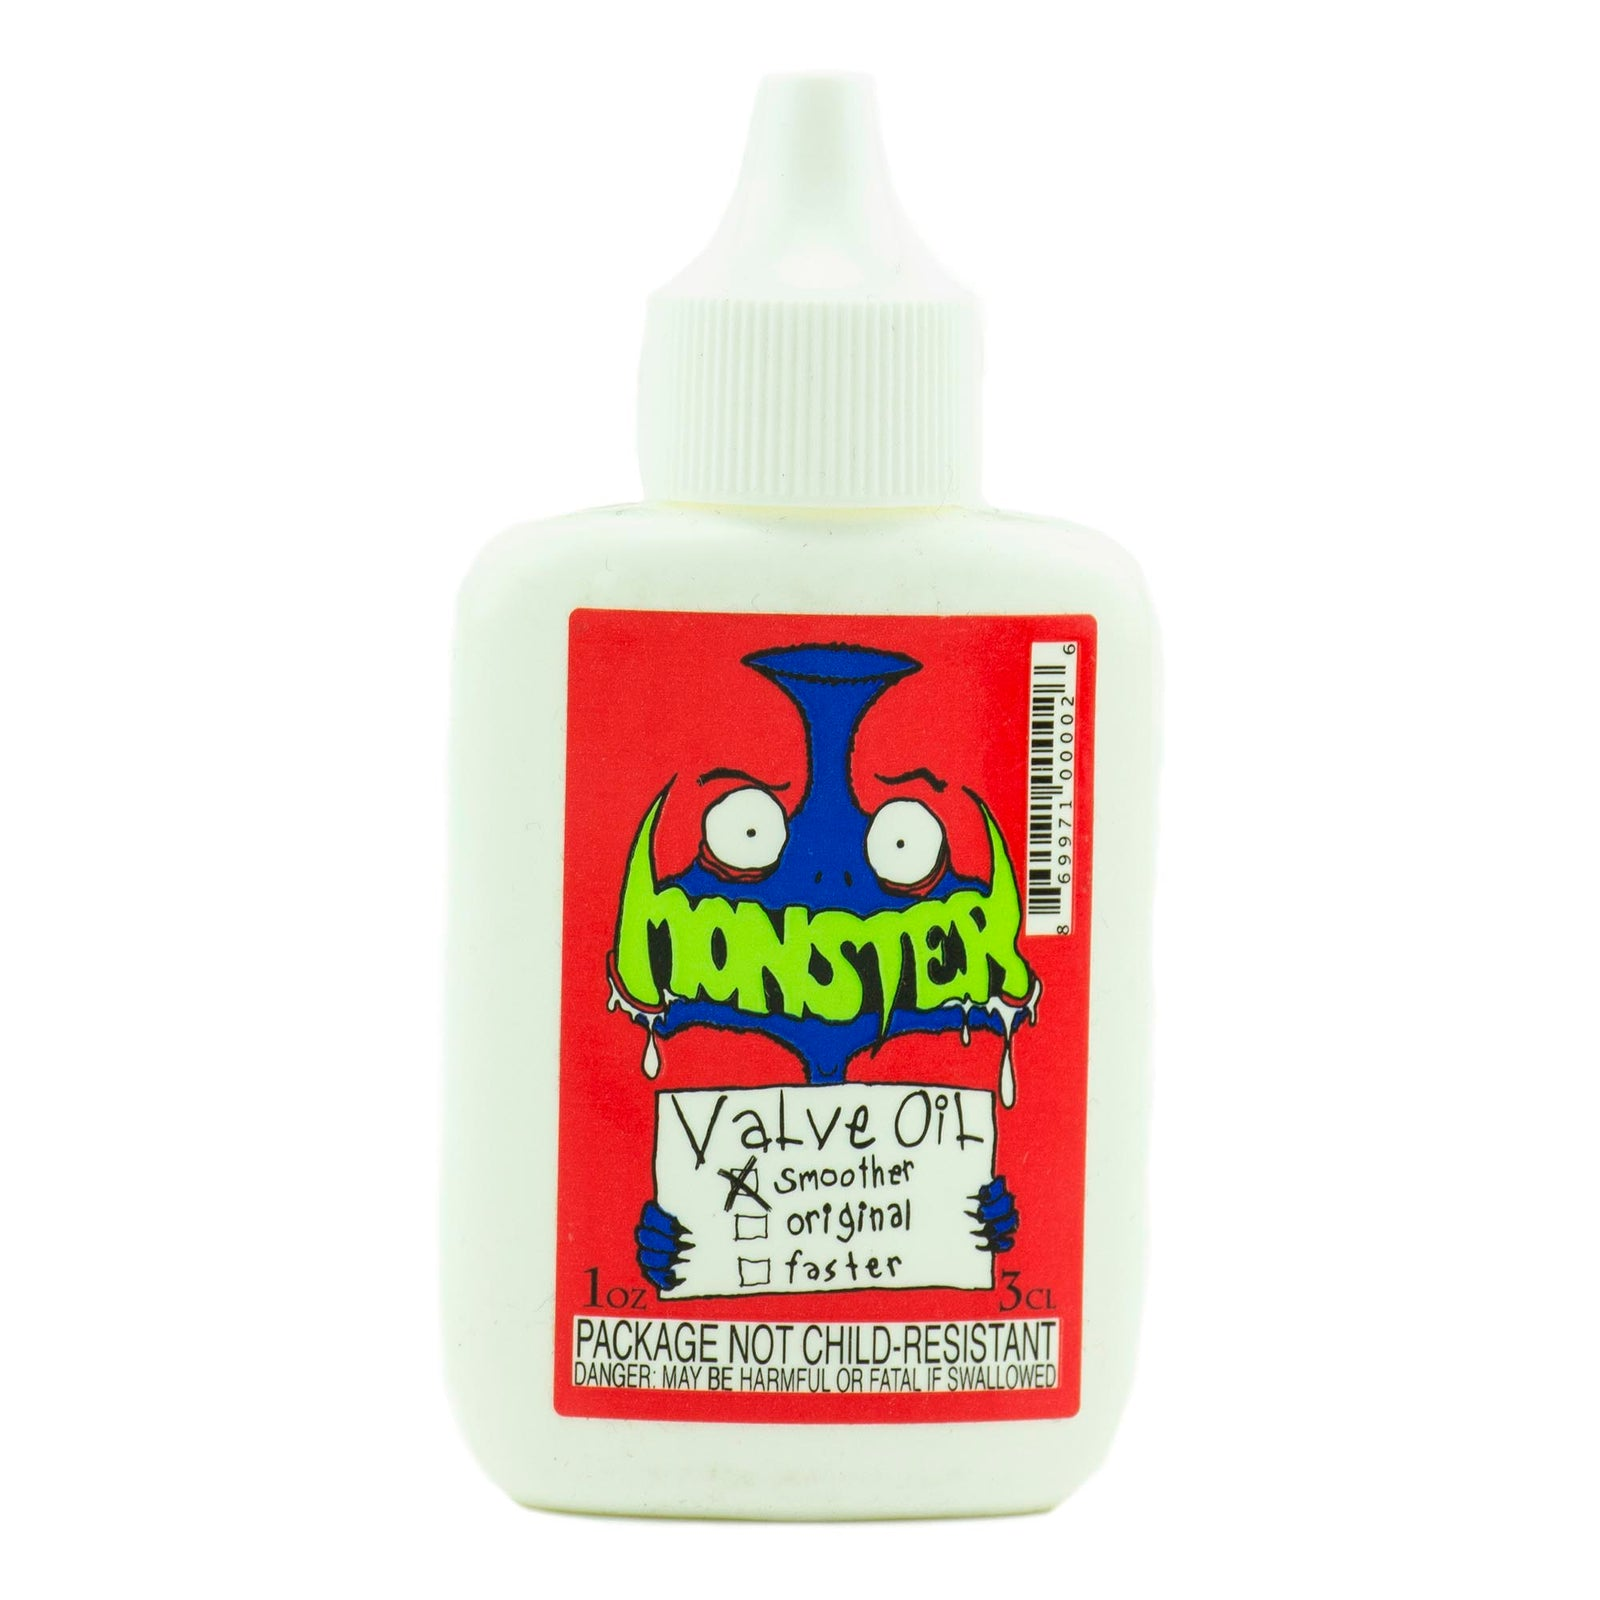 Monster Oil Synthetic Valve Oil - Smoother